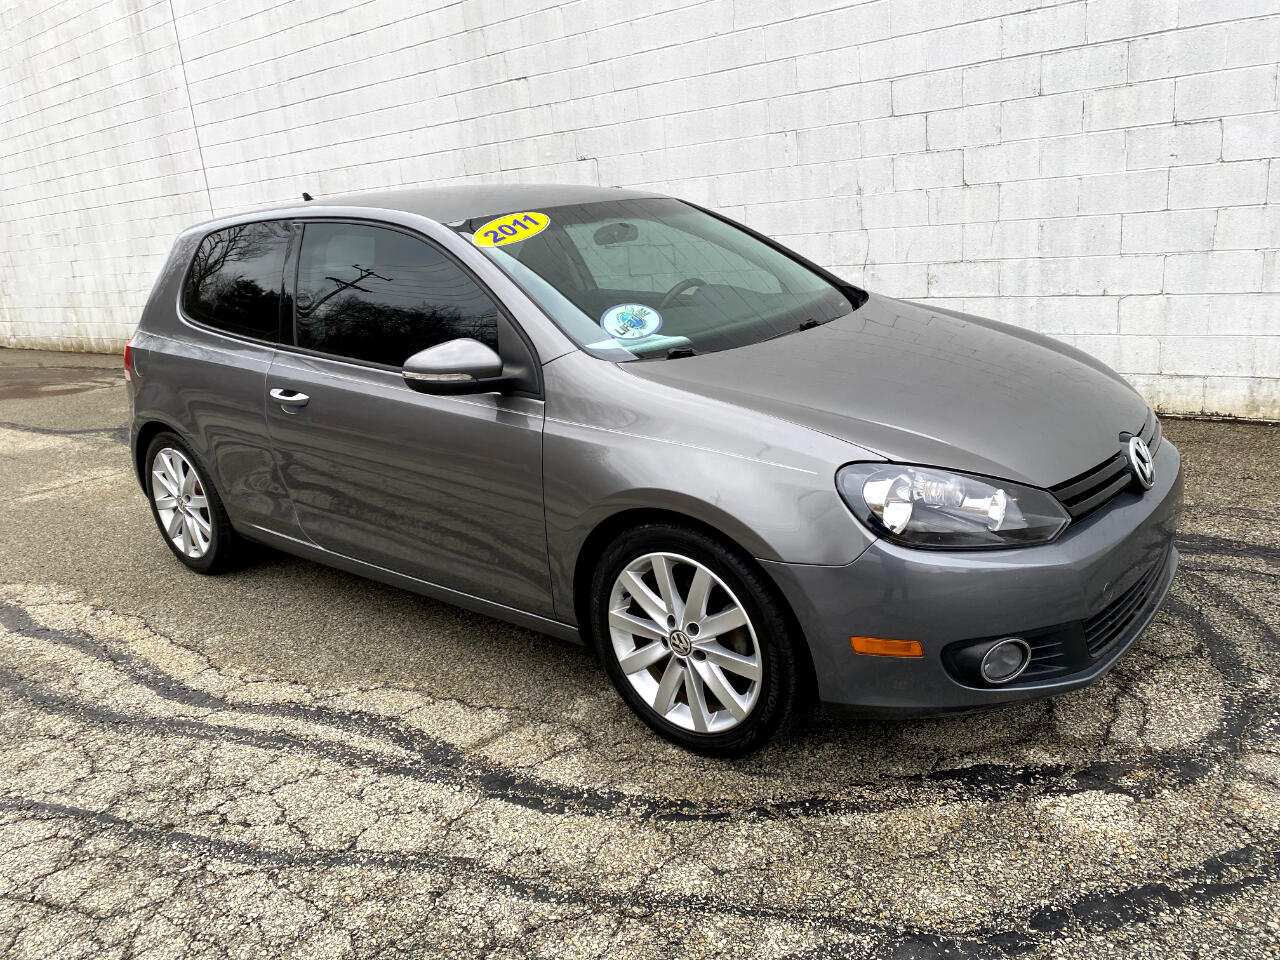 Volkswagen Golf 2.0L 2-Door TDI 2011